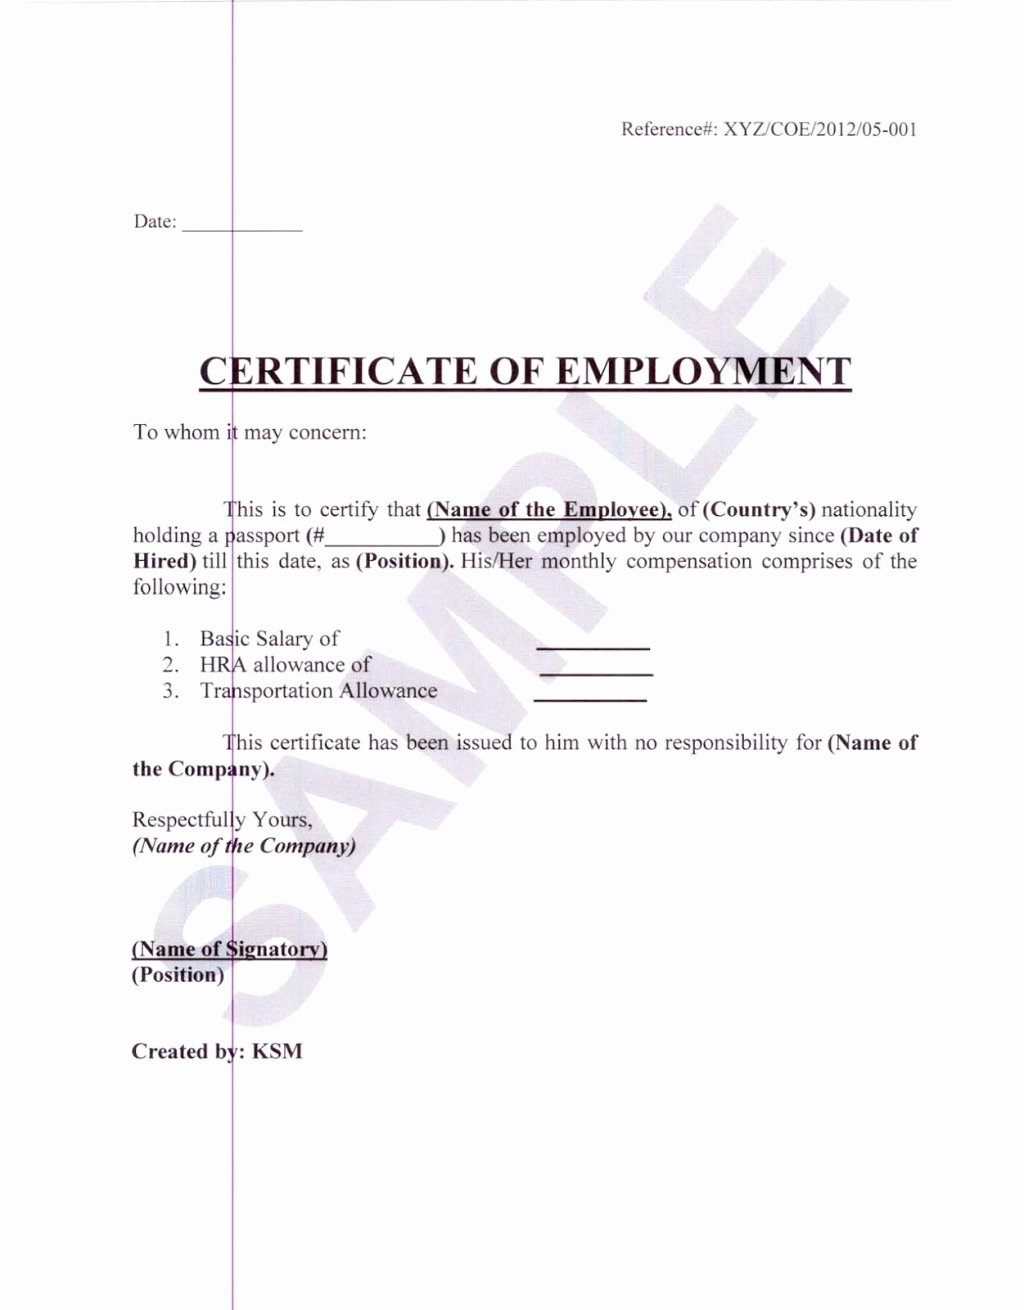 formal sample of certificate of employment with white paper background and editable blank date and name space